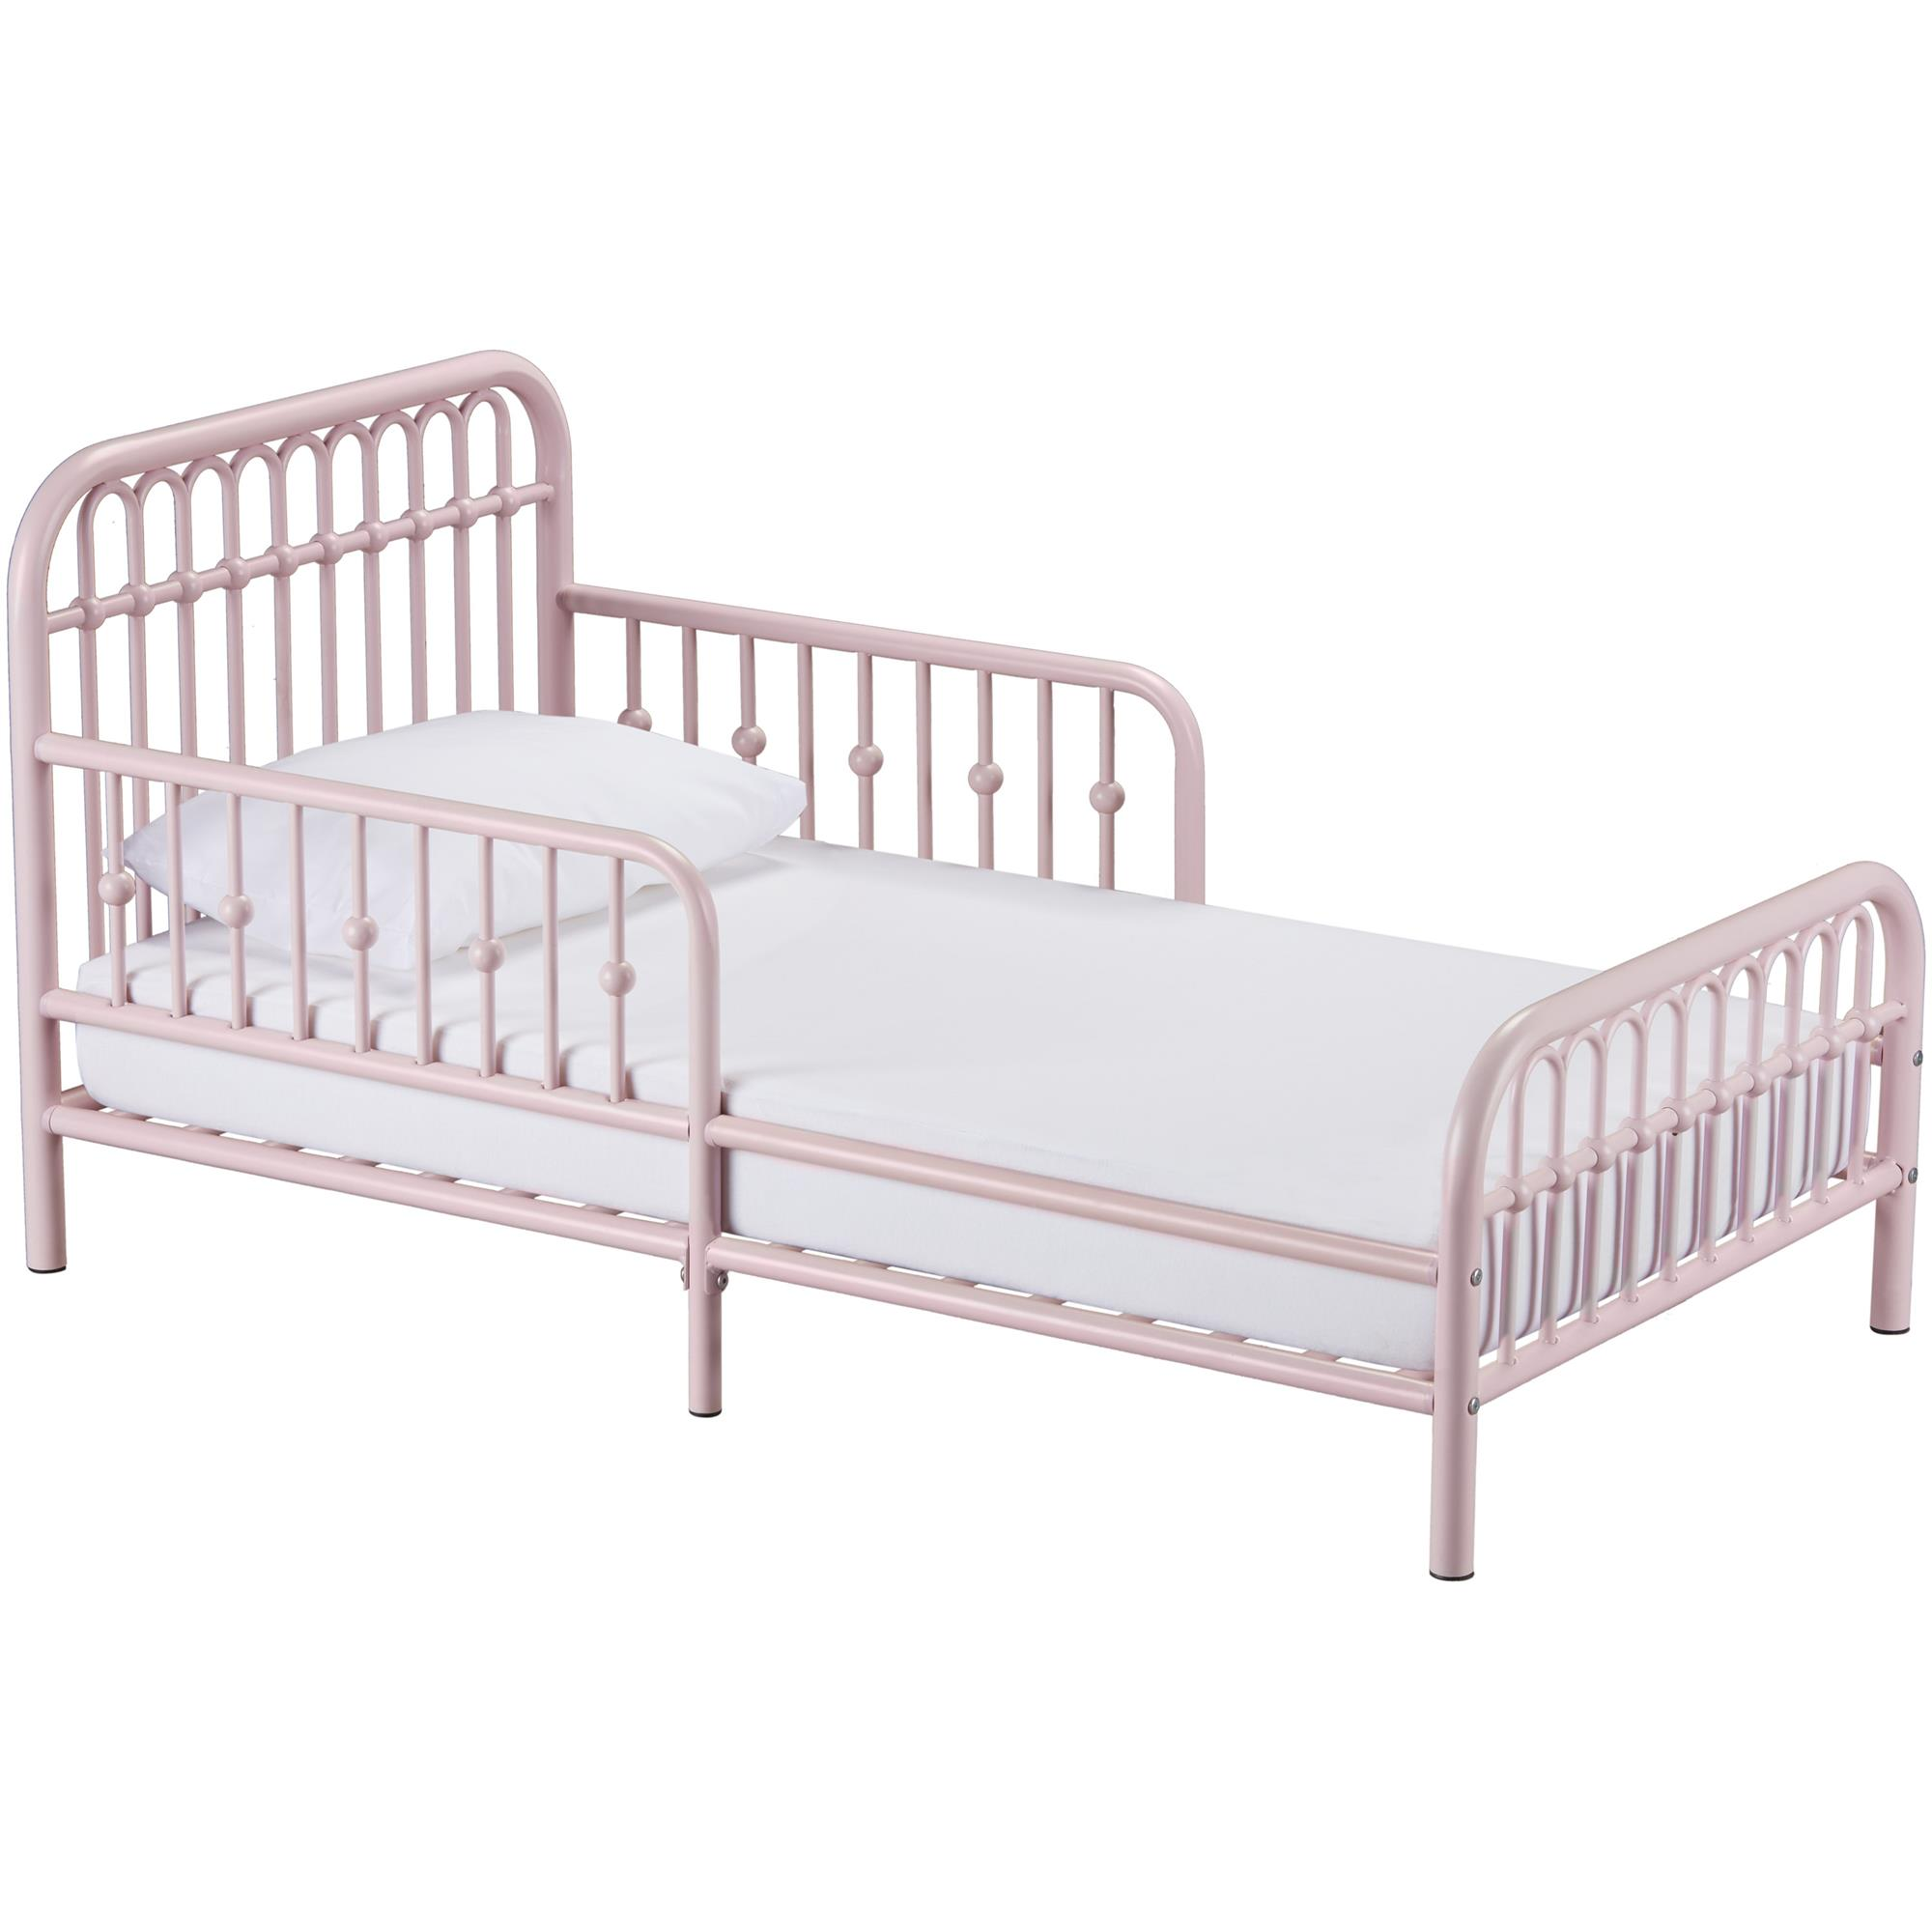 Little Seeds Monarch Metal Toddler Bed, Gray